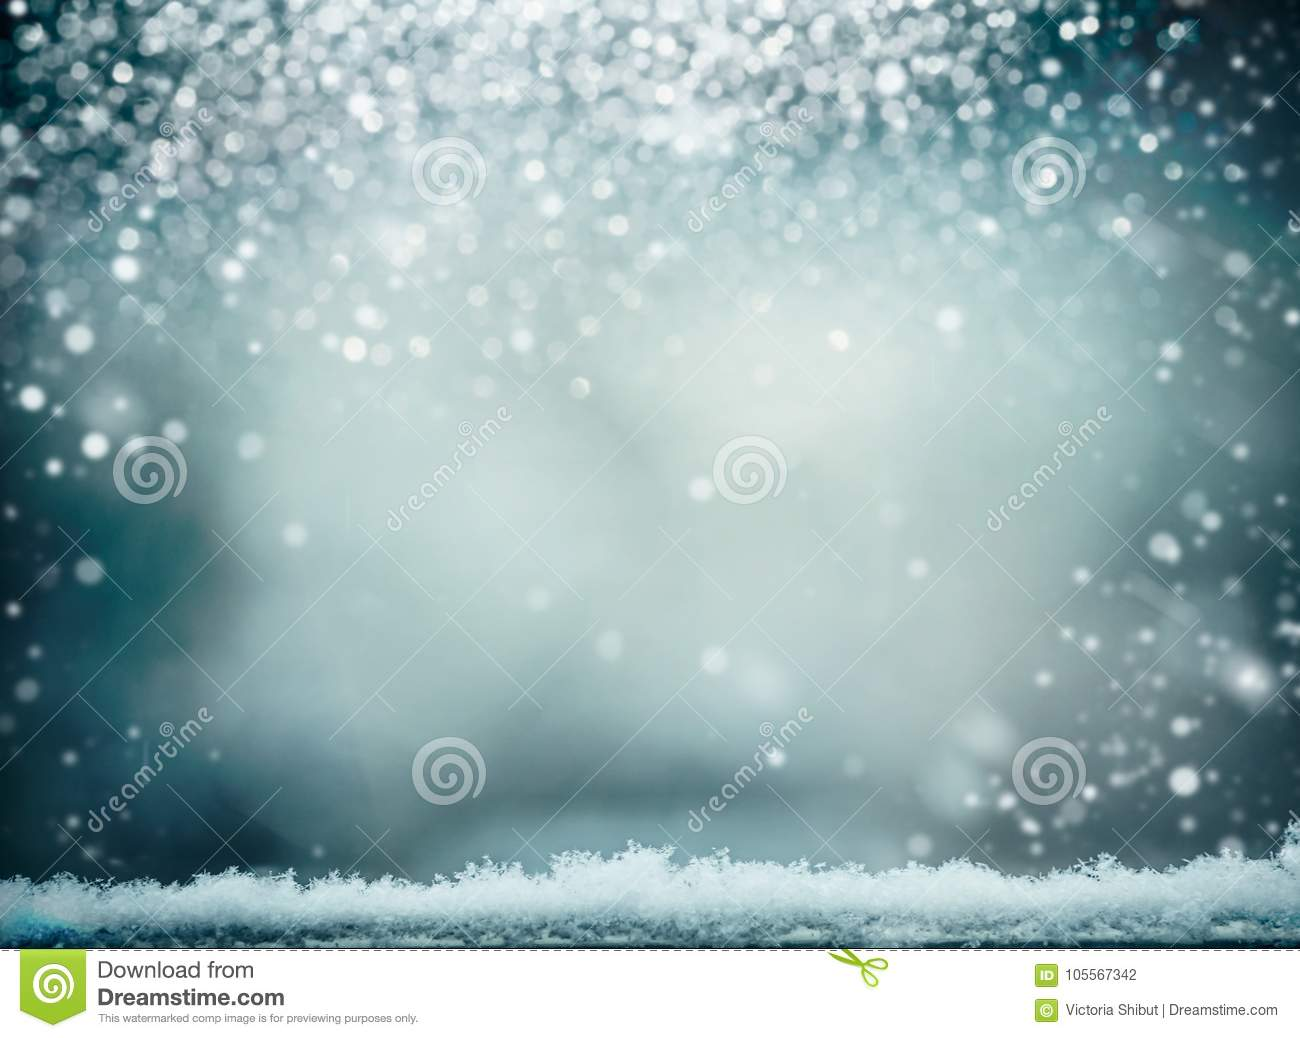 Wonderful winter background with snow. Winter holidays and Christmas